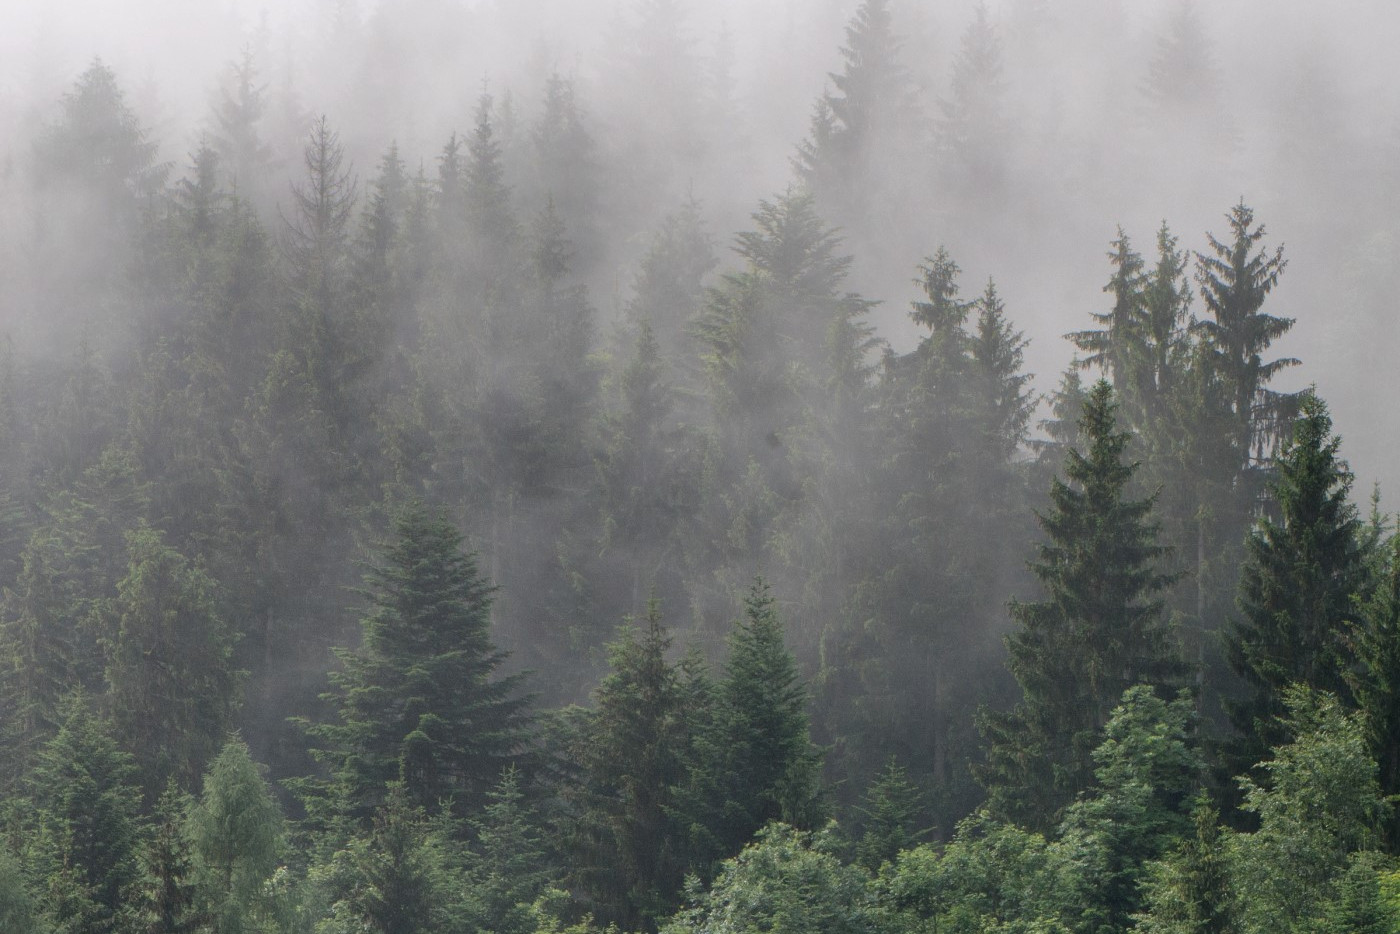 Forest of trees with fog over the top